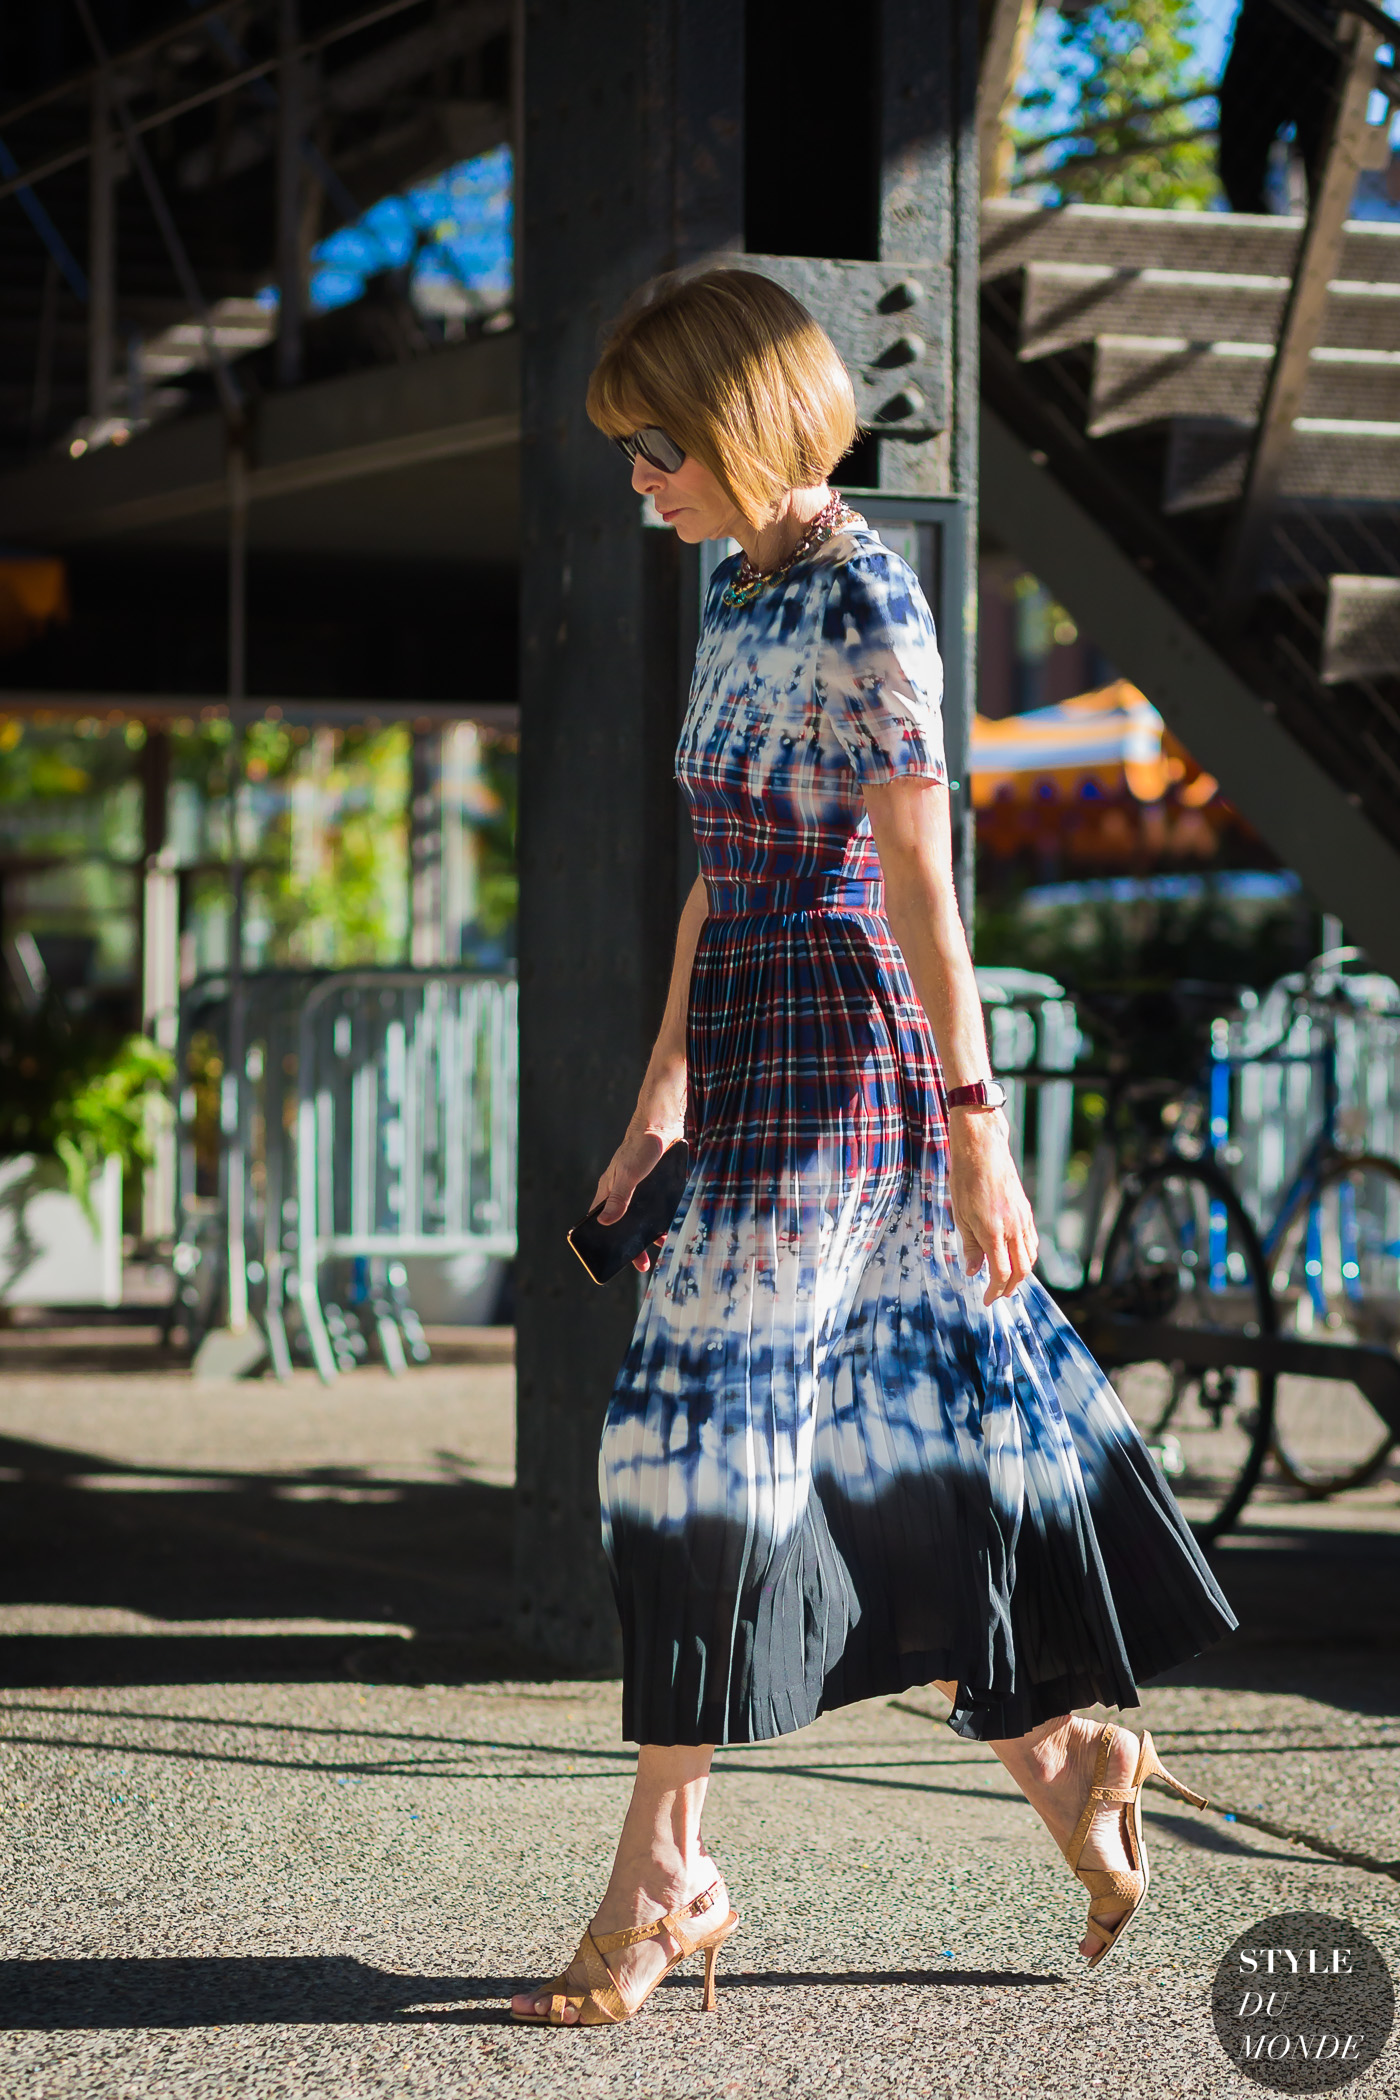 Anna Wintour by STYLEDUMONDE Street Style Fashion Photography